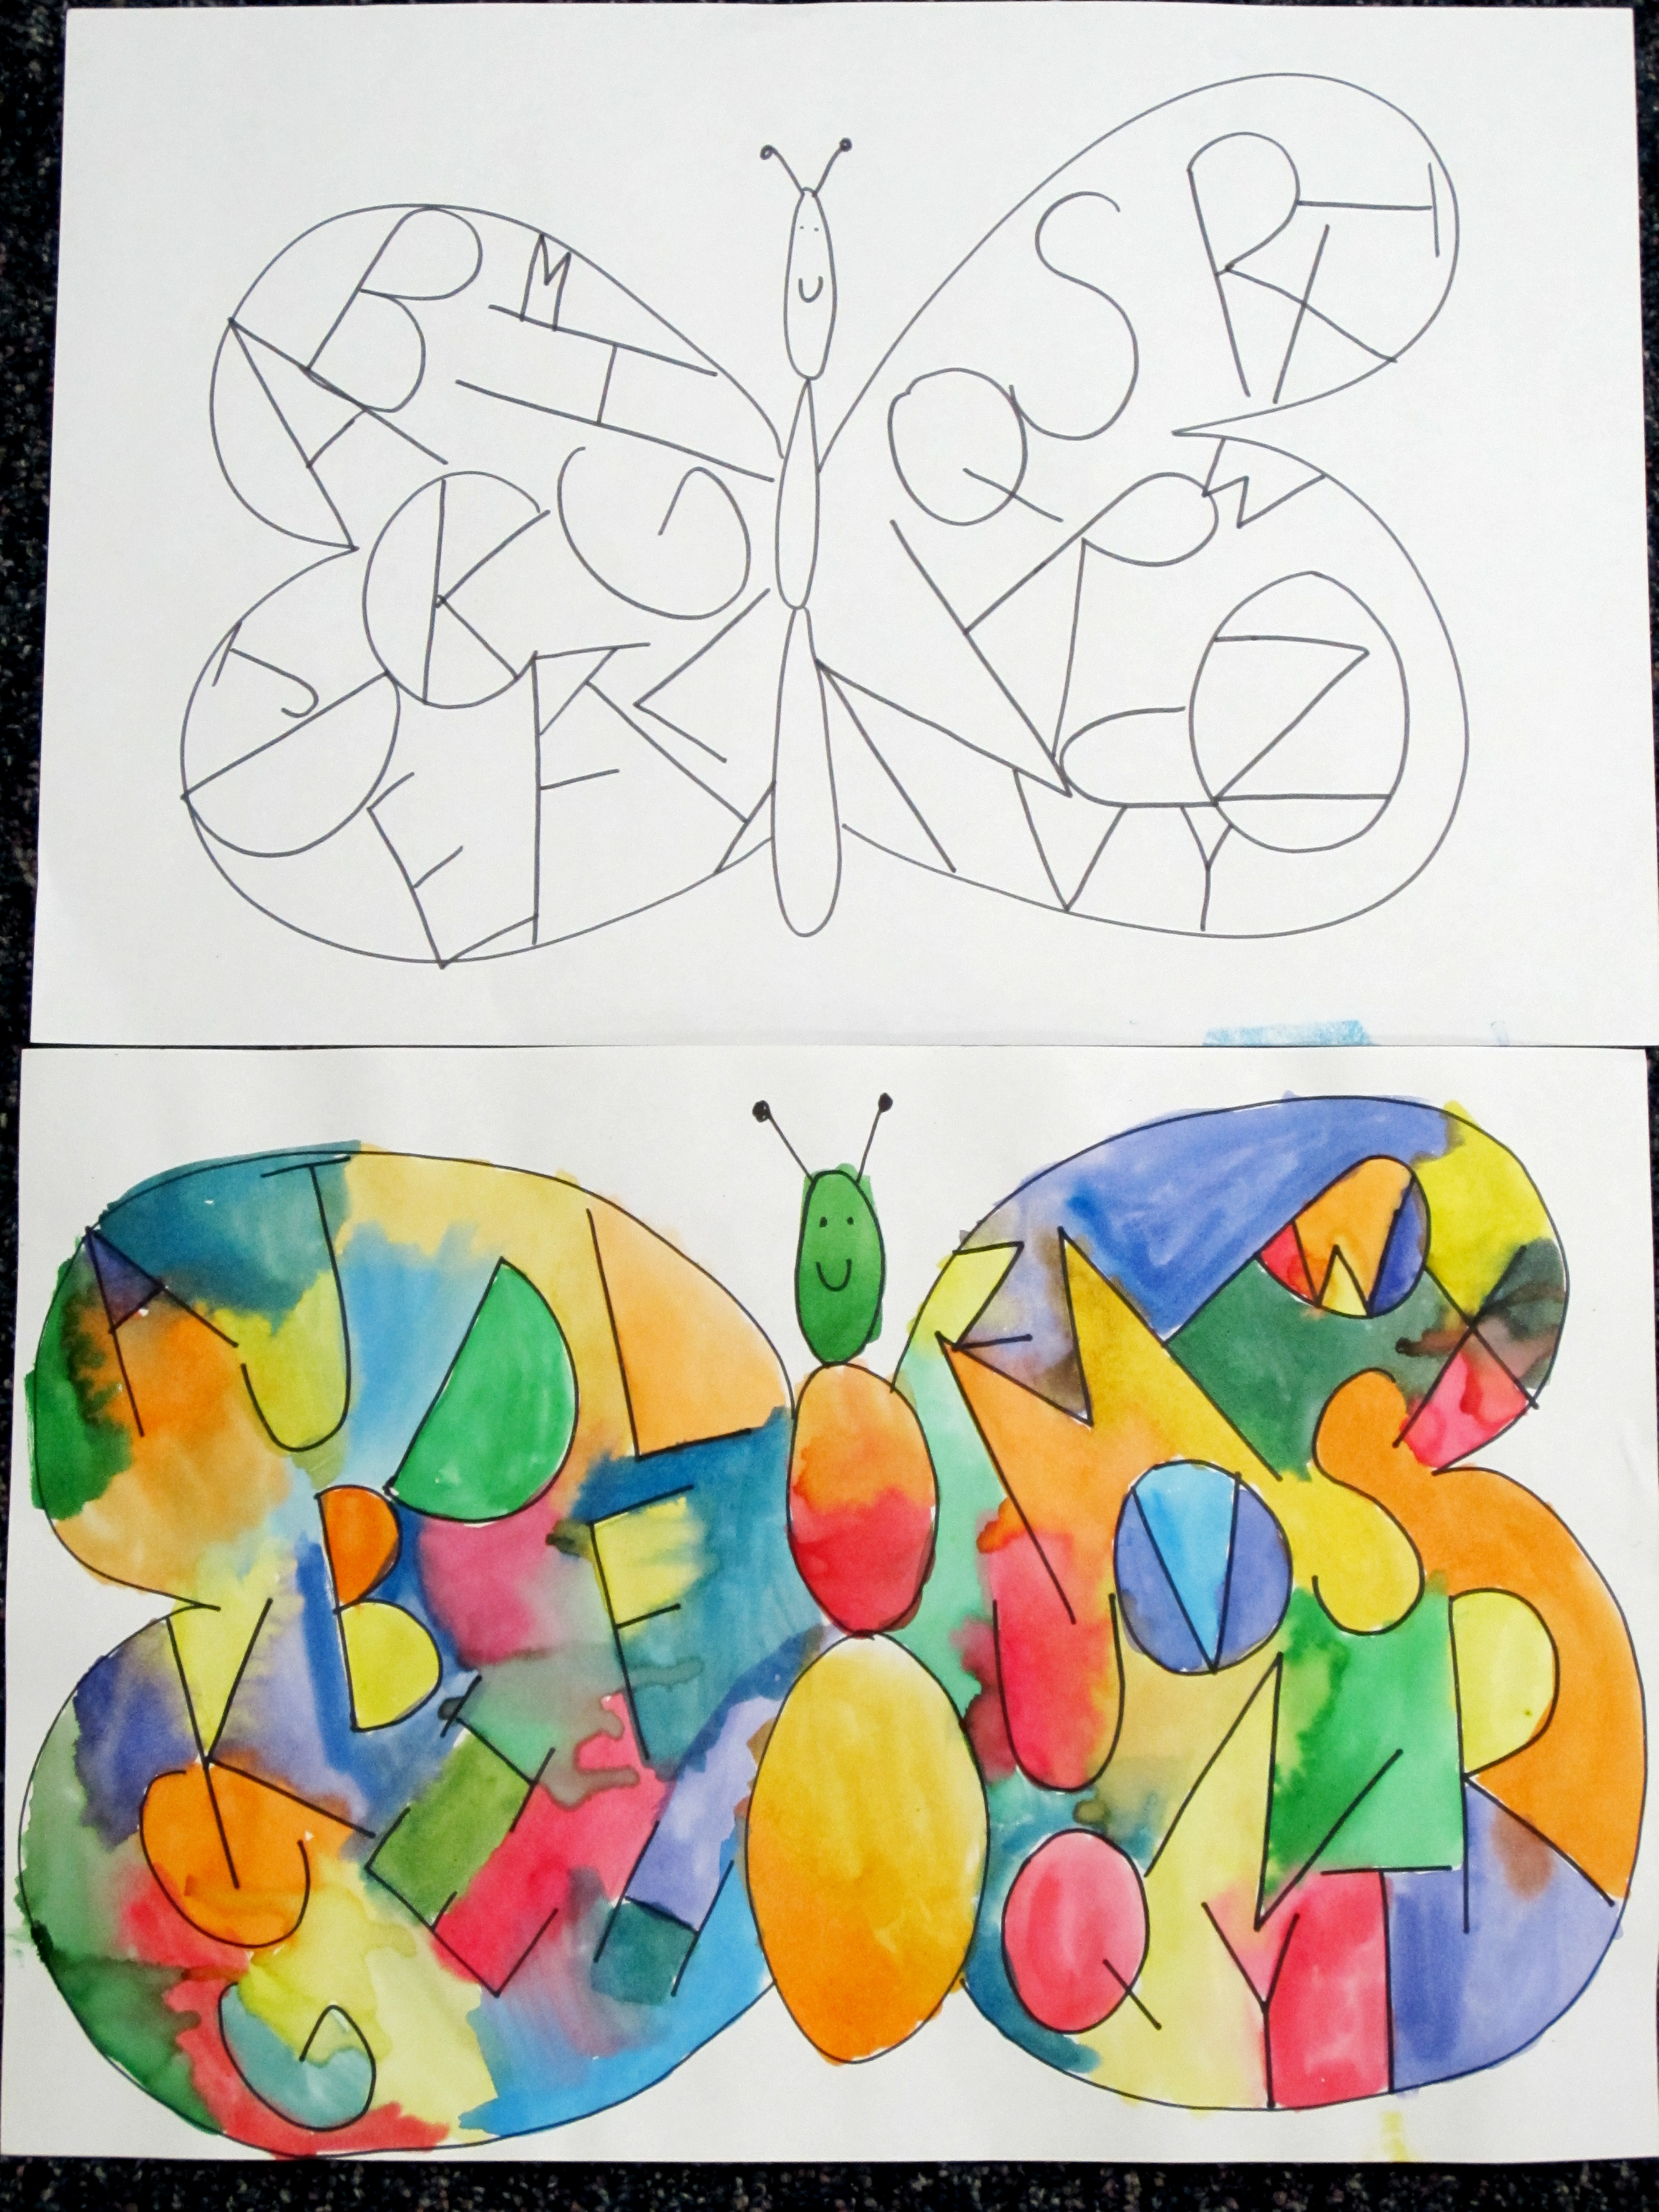 3000x4000 Guided Drawing. Inside The Butterfly Wings Write The Alphabet. Go